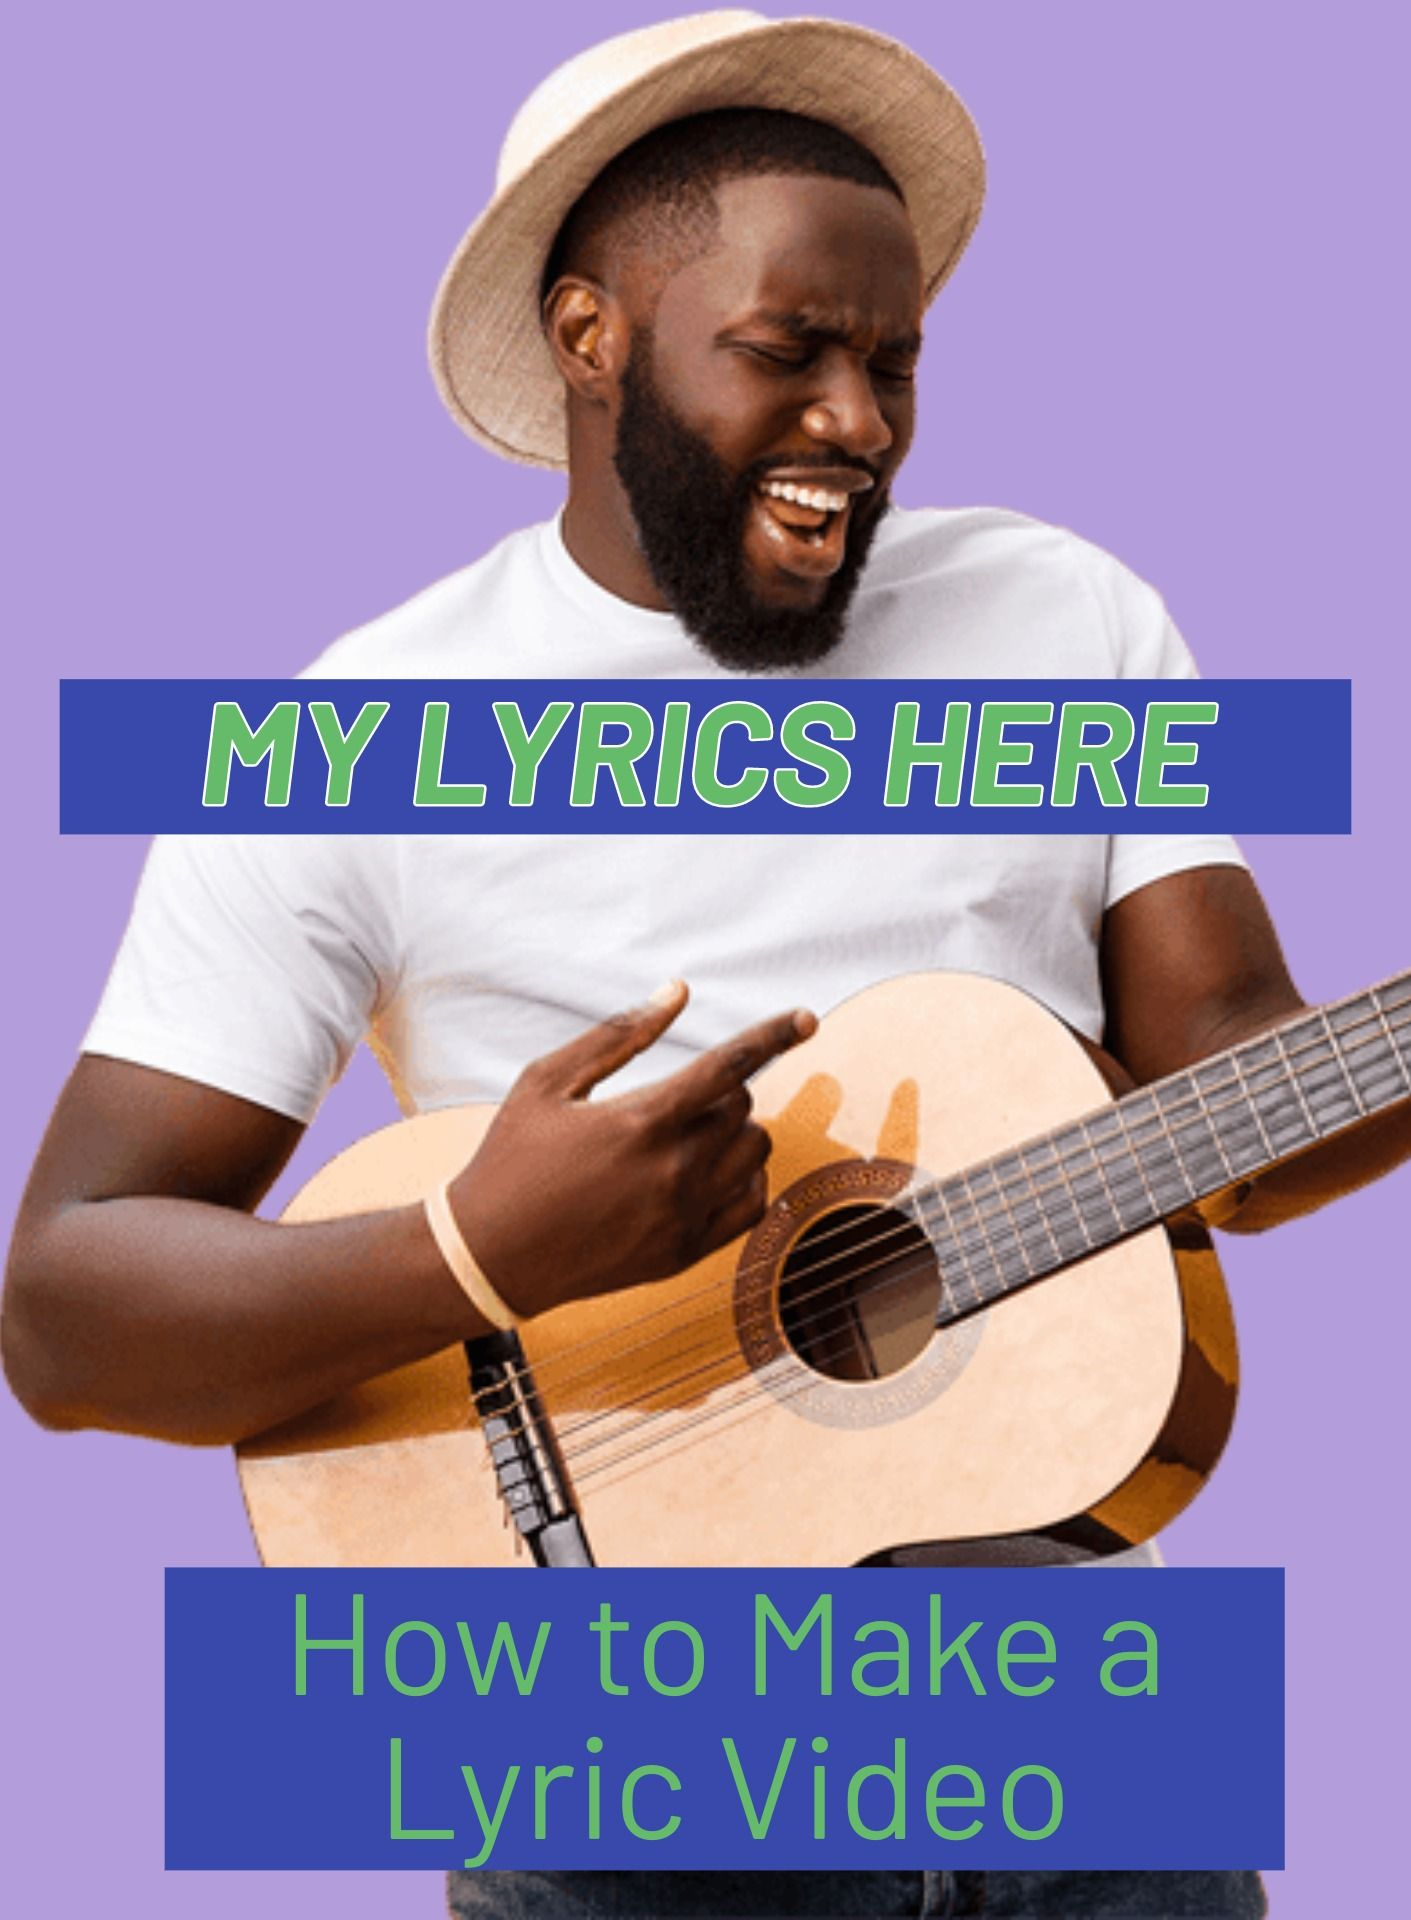 How to make a lyric video for free online